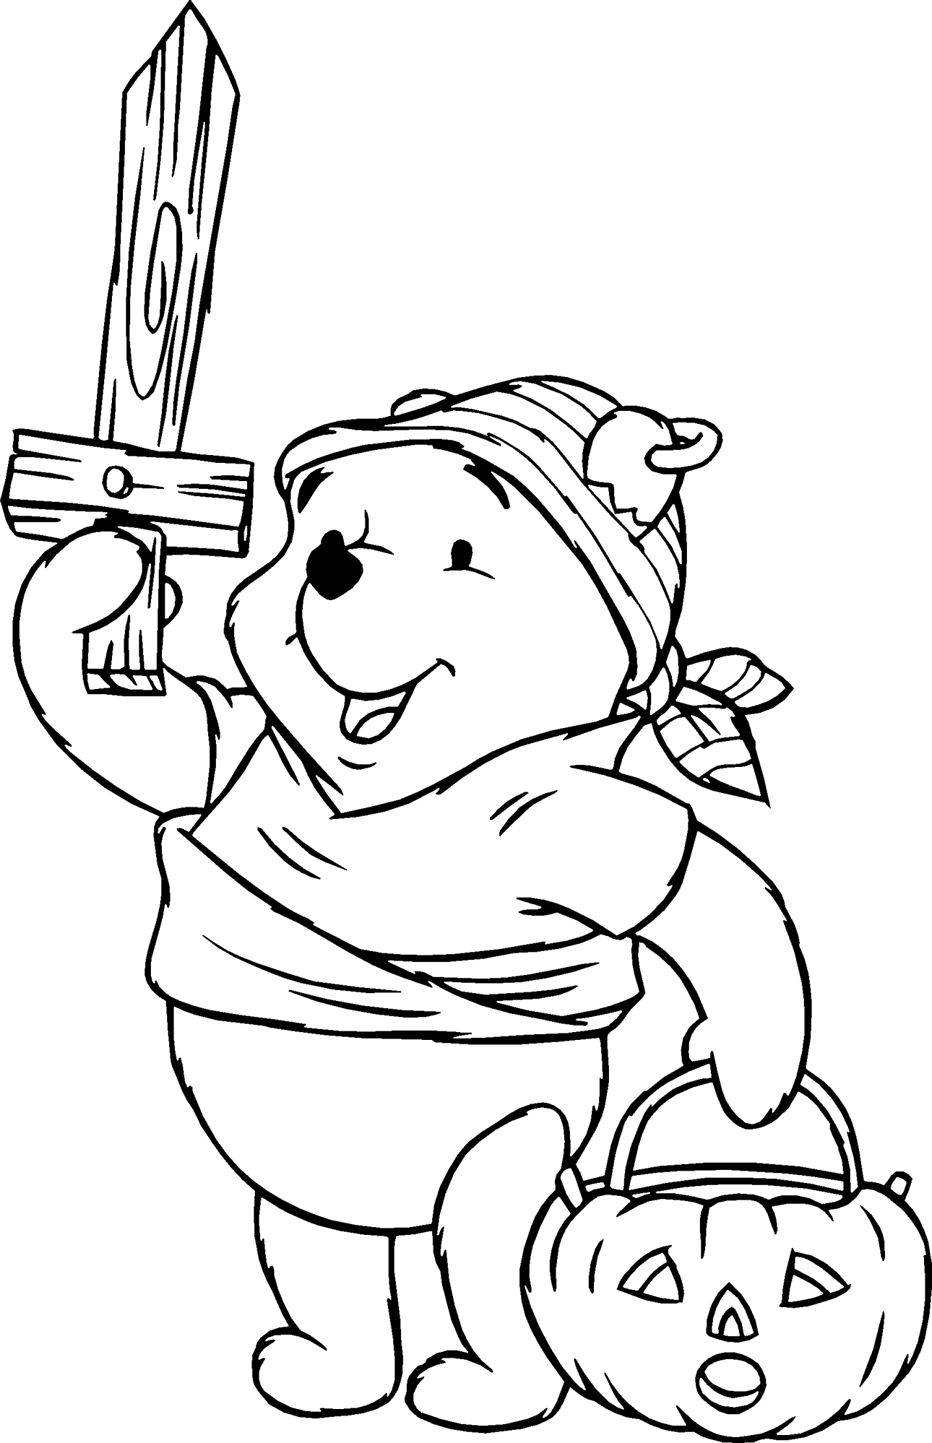 Winnie The Pooh Coloring Pages 8 Coloring Kids